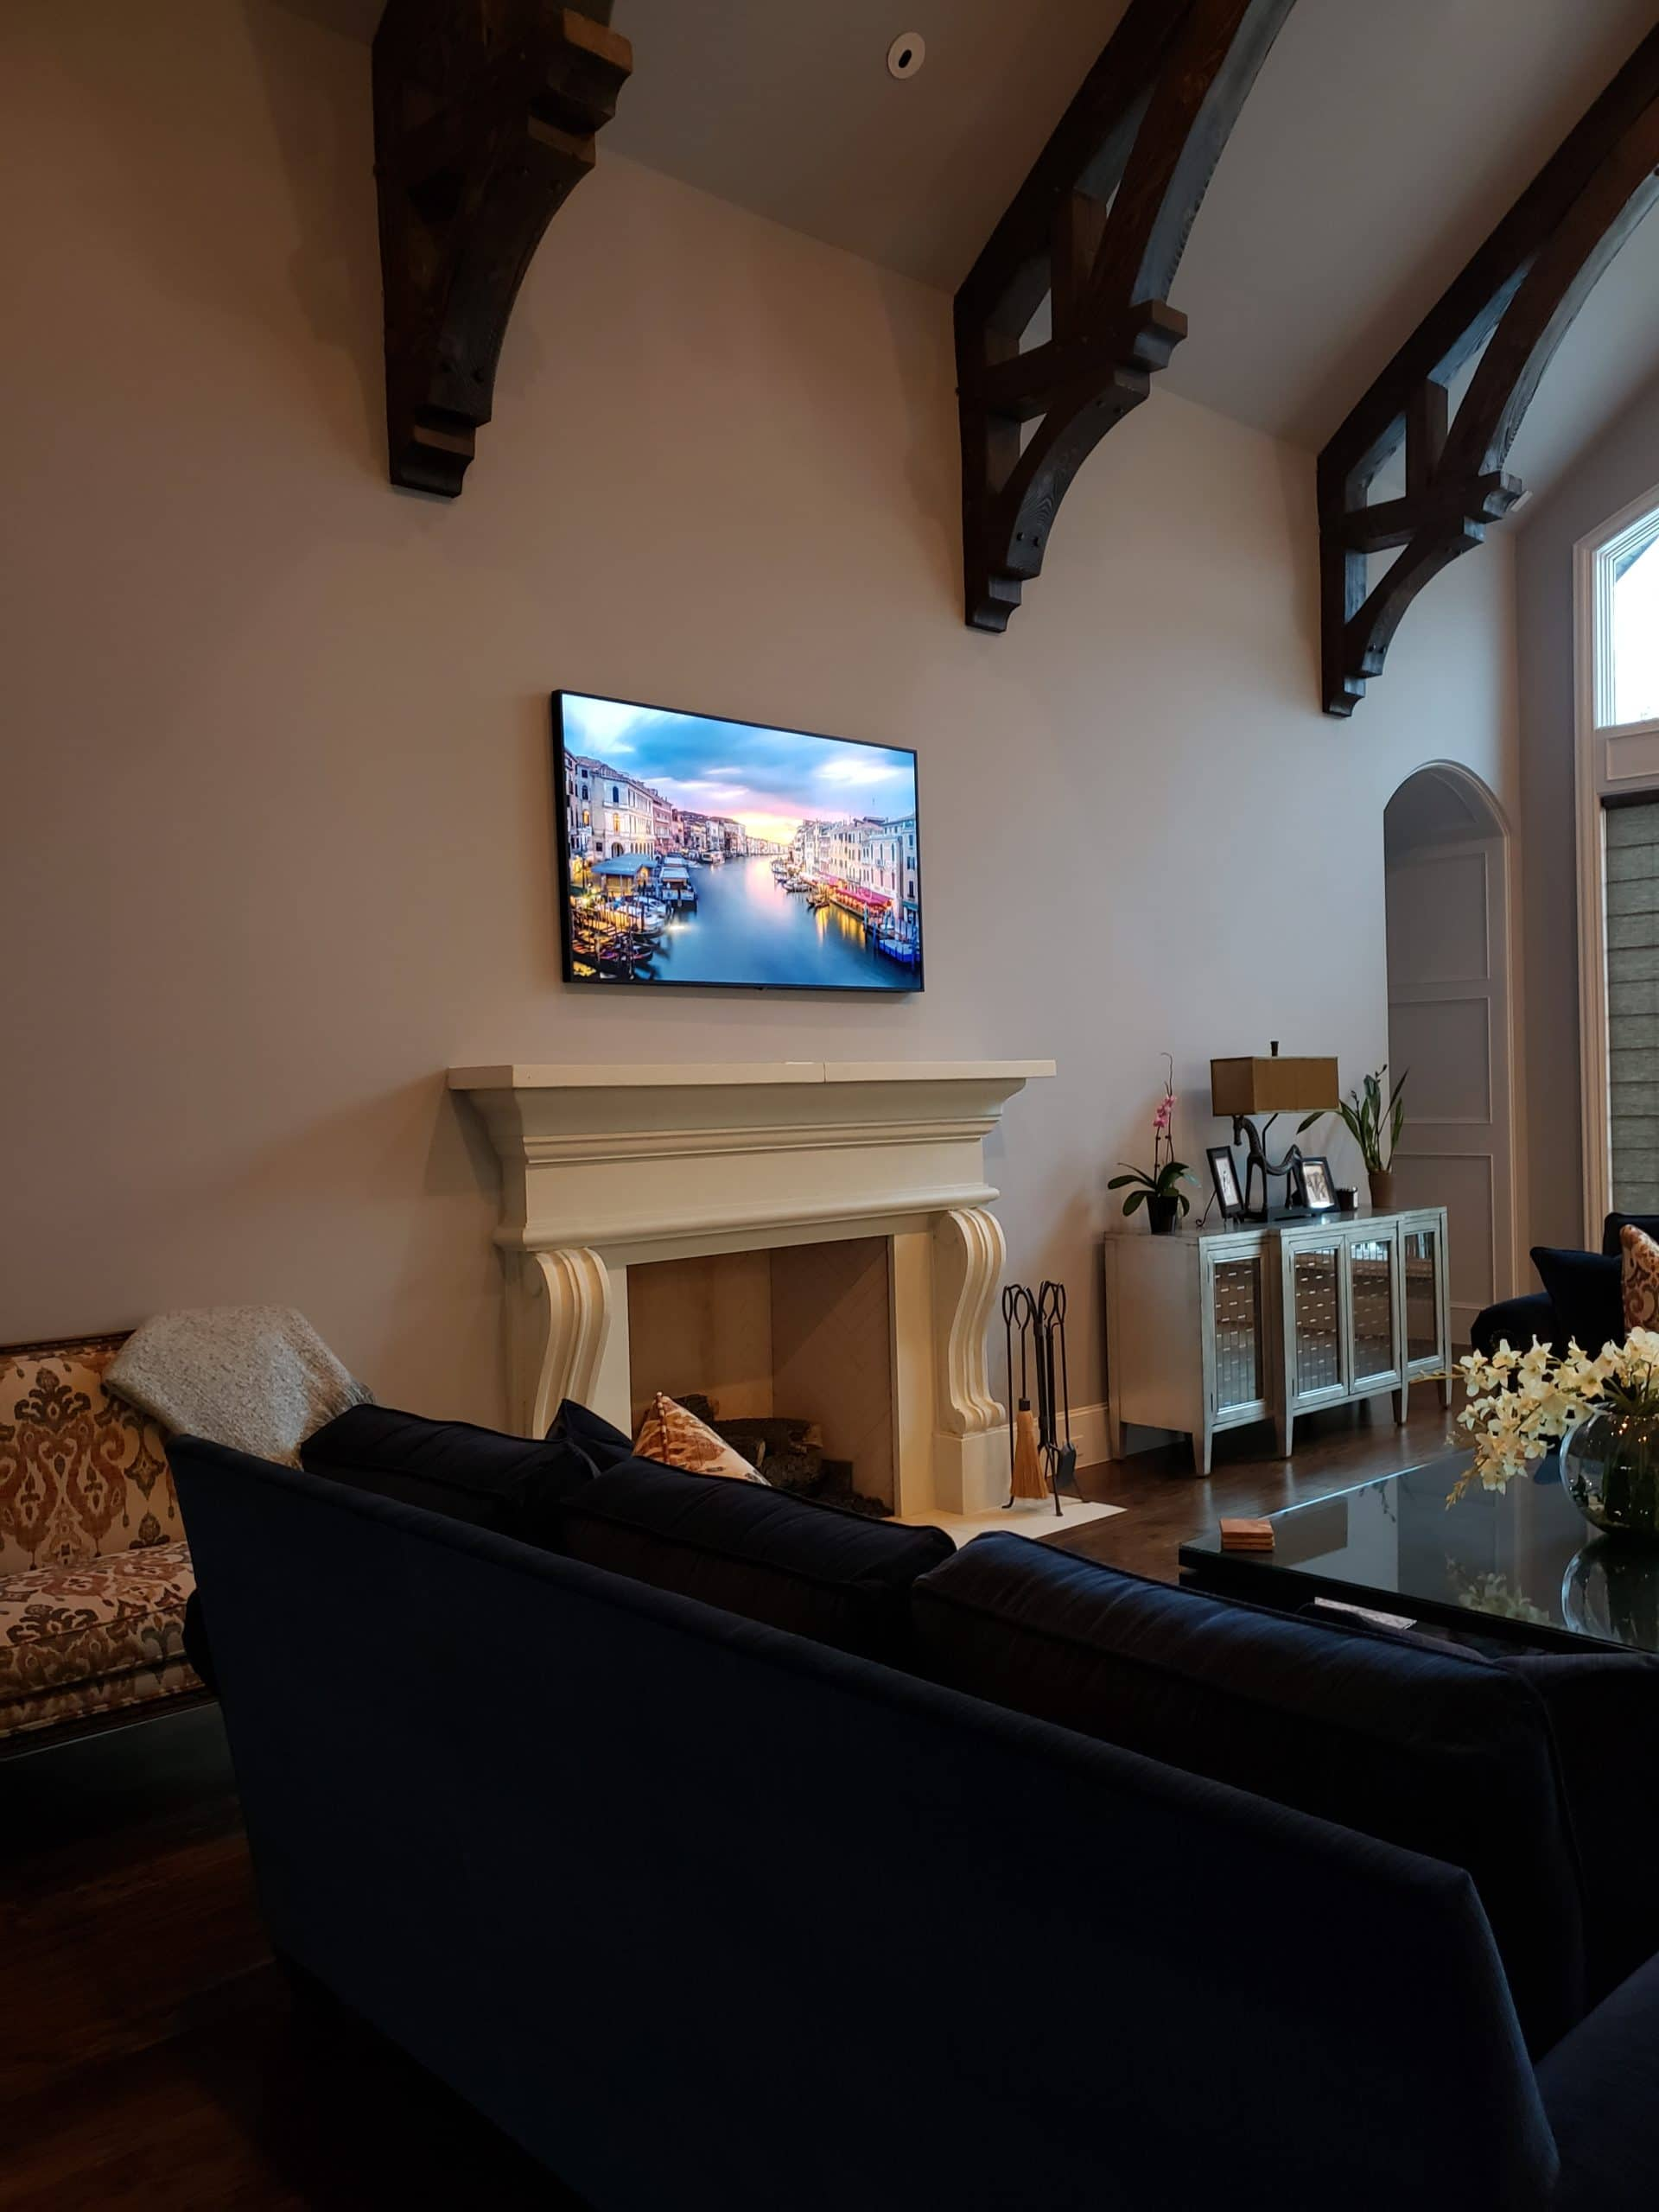 2020 Living room ideas, modern Living room ideas, Living room ideas, dkorhome, Dallas Designers, neutral home office ideas with colorful accents interior design blog, D'KOR HOME by Dee Frazier Interiors, Interior Designers Near Me, Dallas TX, Dallas interior decorators, Dallas interior designers, Plano interior decorator, allen interior decorator, allen interior designer, frisco interior designer, frisco interior decorator, dallas home designer, award winning interior designer, asid dallas, color interiors spring, interior design dallas, interior decorator dallas, dallas interior design firms, interior design dallas texas, texas interior design, residential interior design firms dallas, dallas interior design service, granite interiors dallas